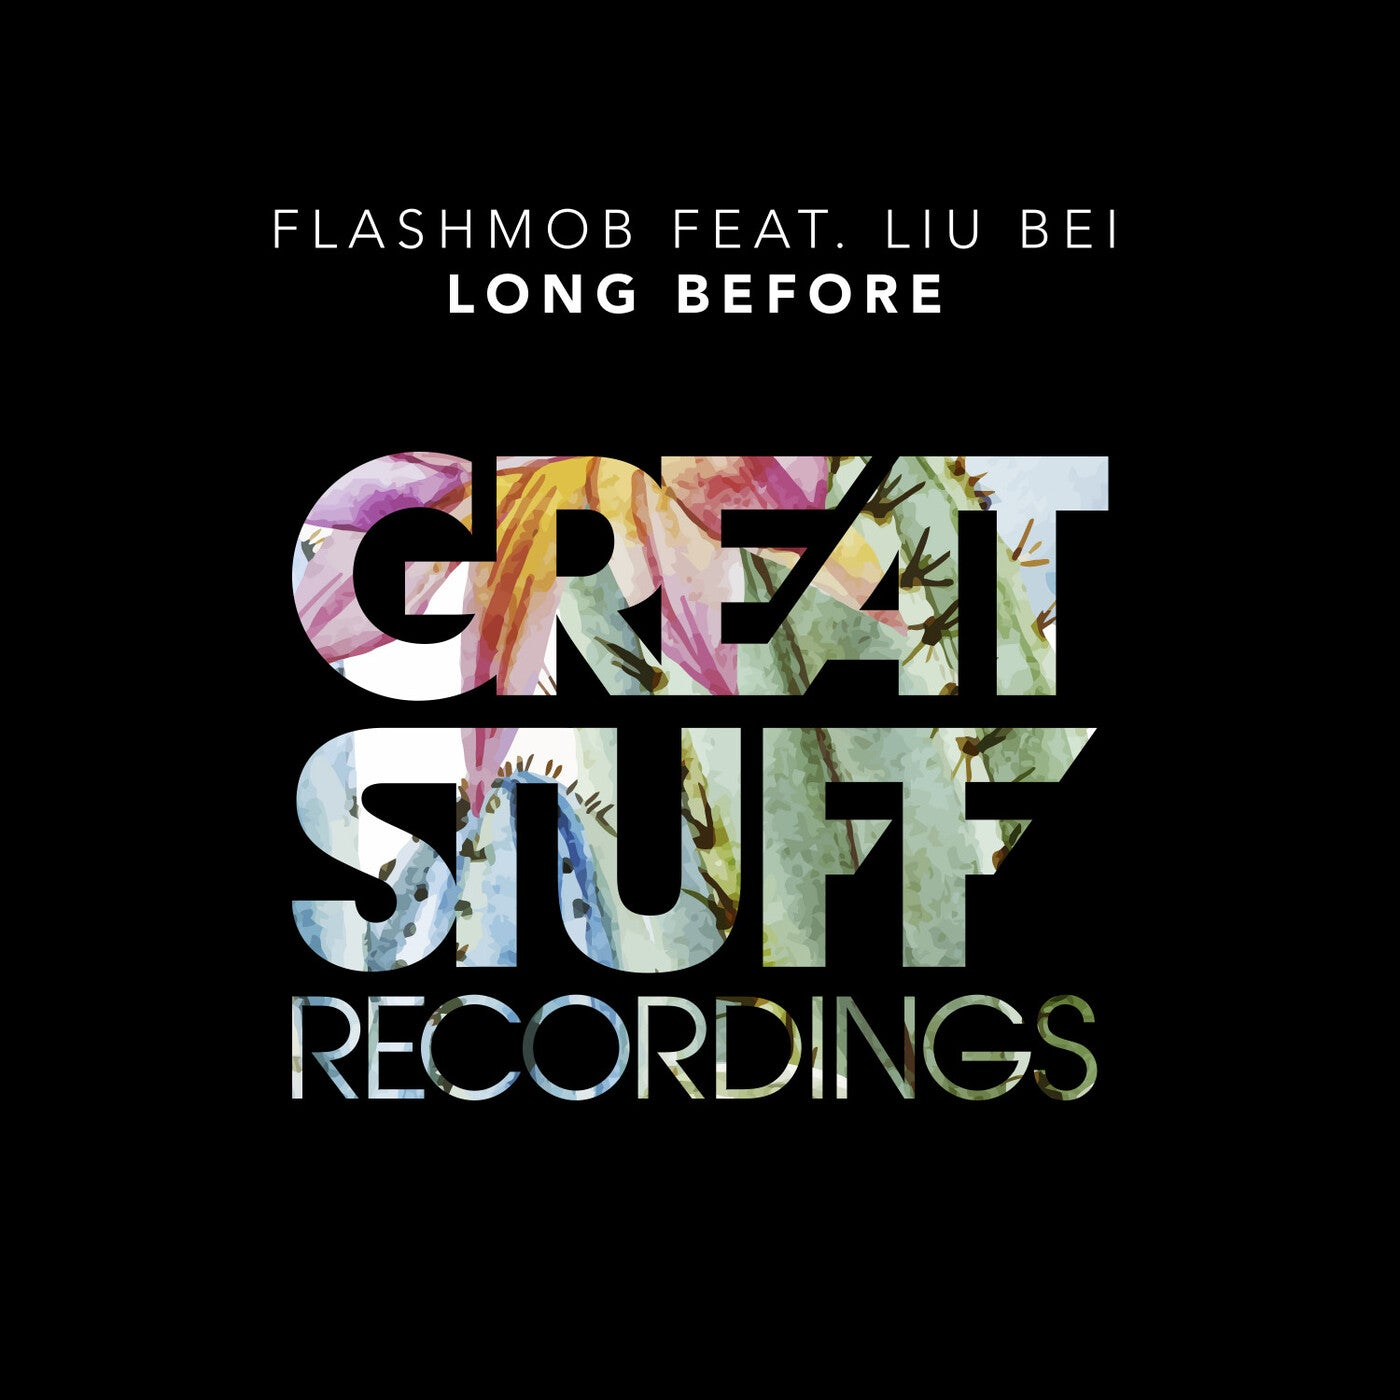 Flashmob feat. Liu Bei - Long Before (Extended Mix)